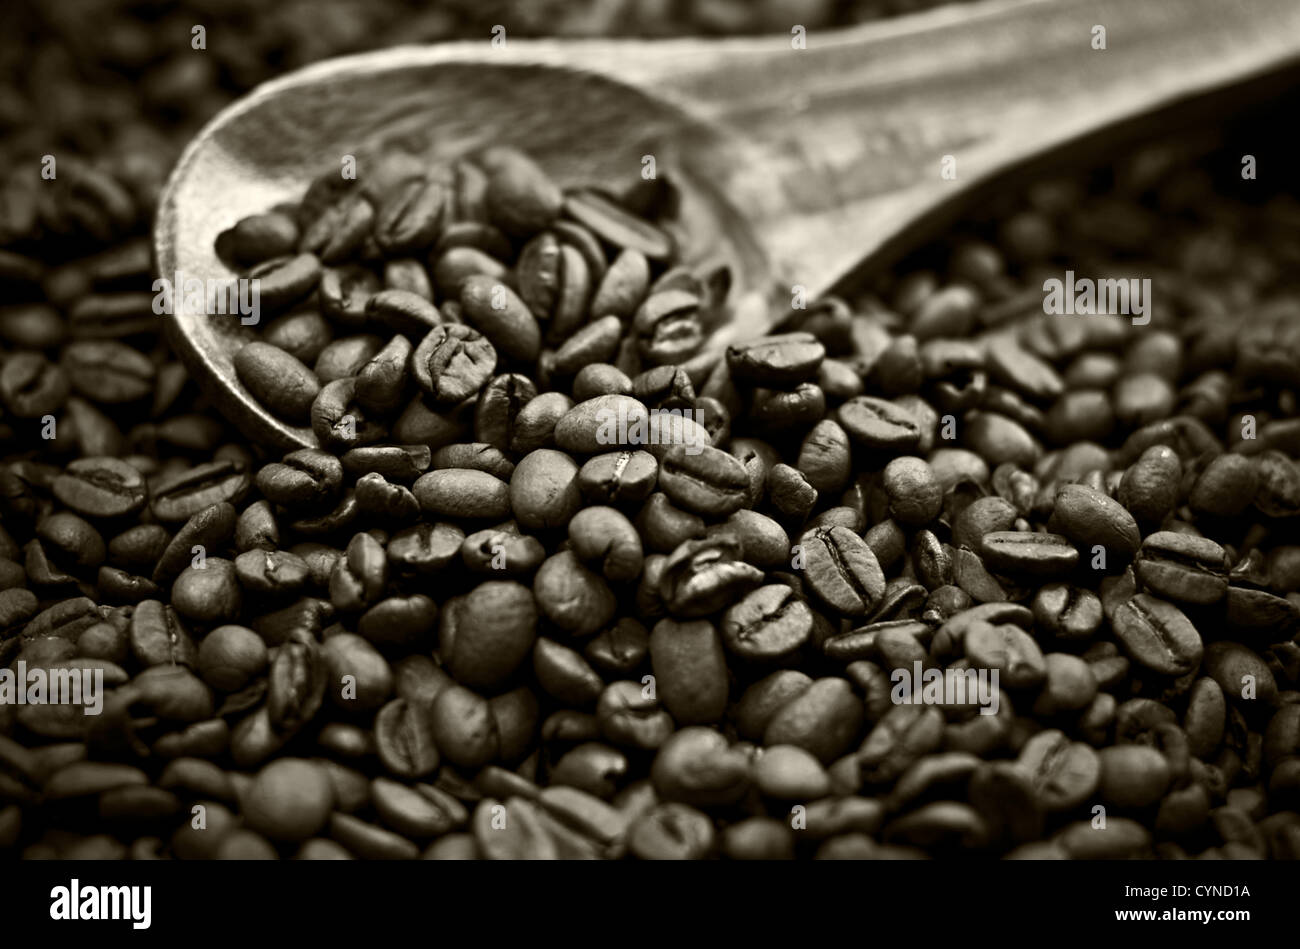 Full frame of coffee beans in sepia tones. - Stock Image